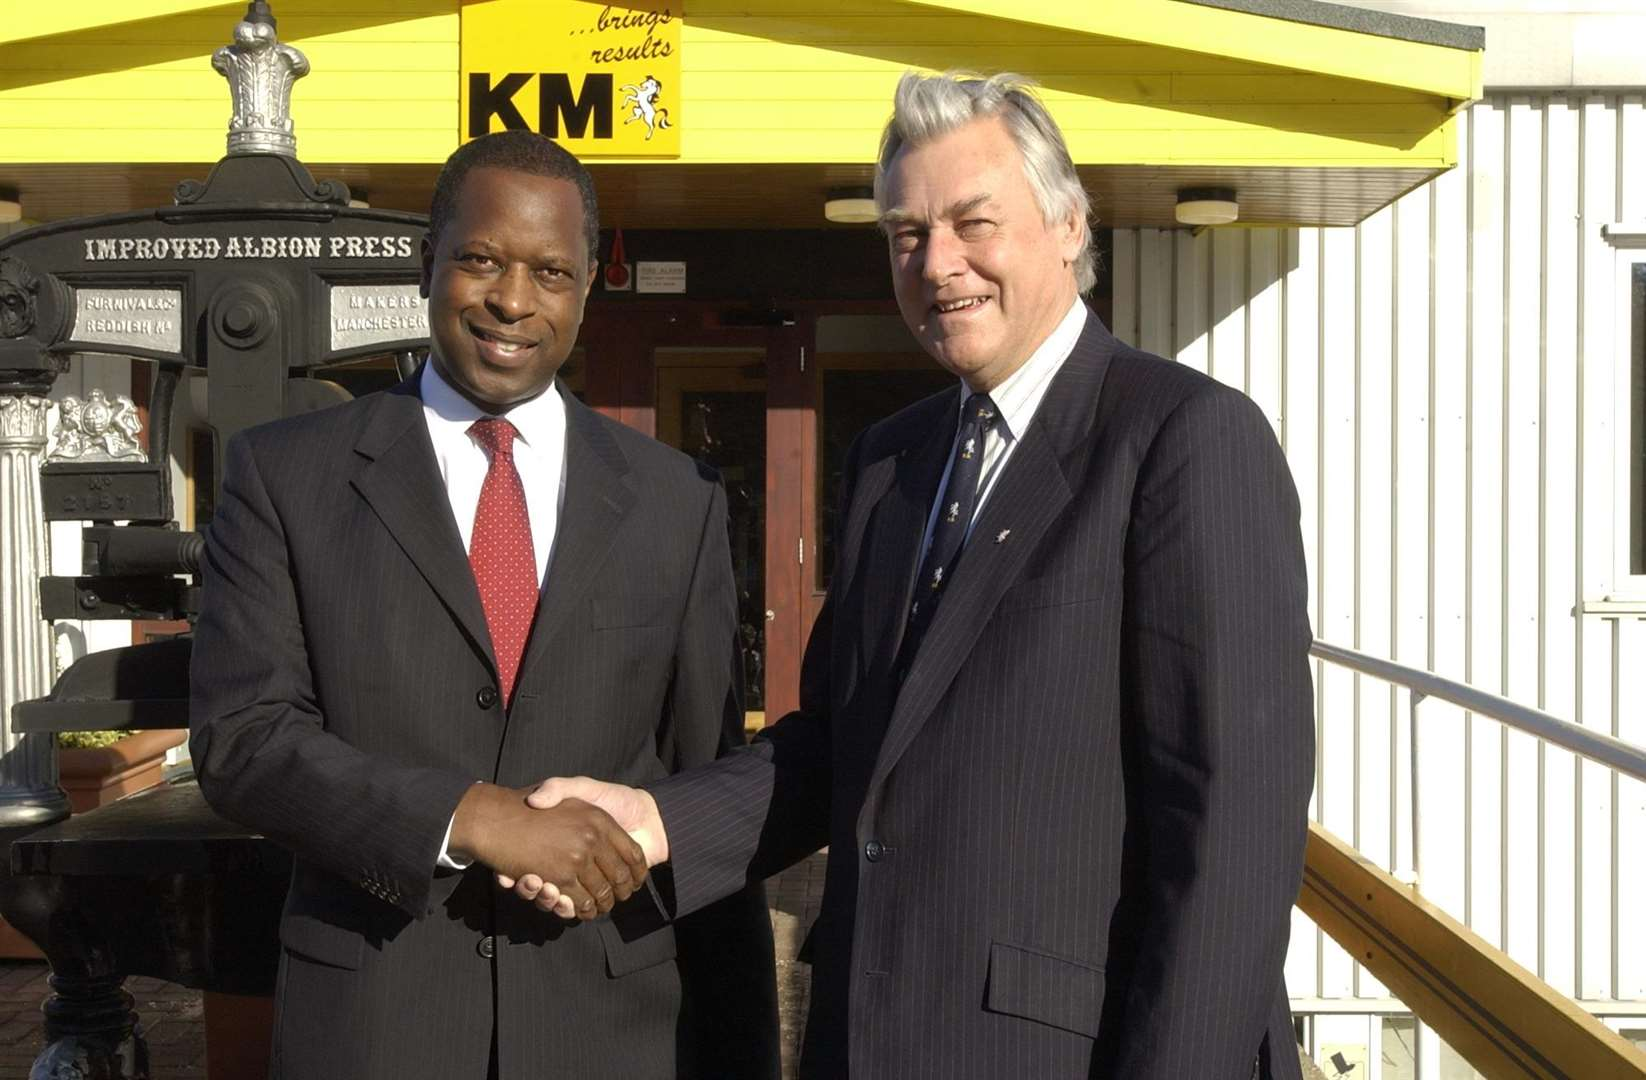 As Chief Constable of Kent, Michael Fuller meets the late Edwin Boorman, the then chairman of what is now KM Media Group